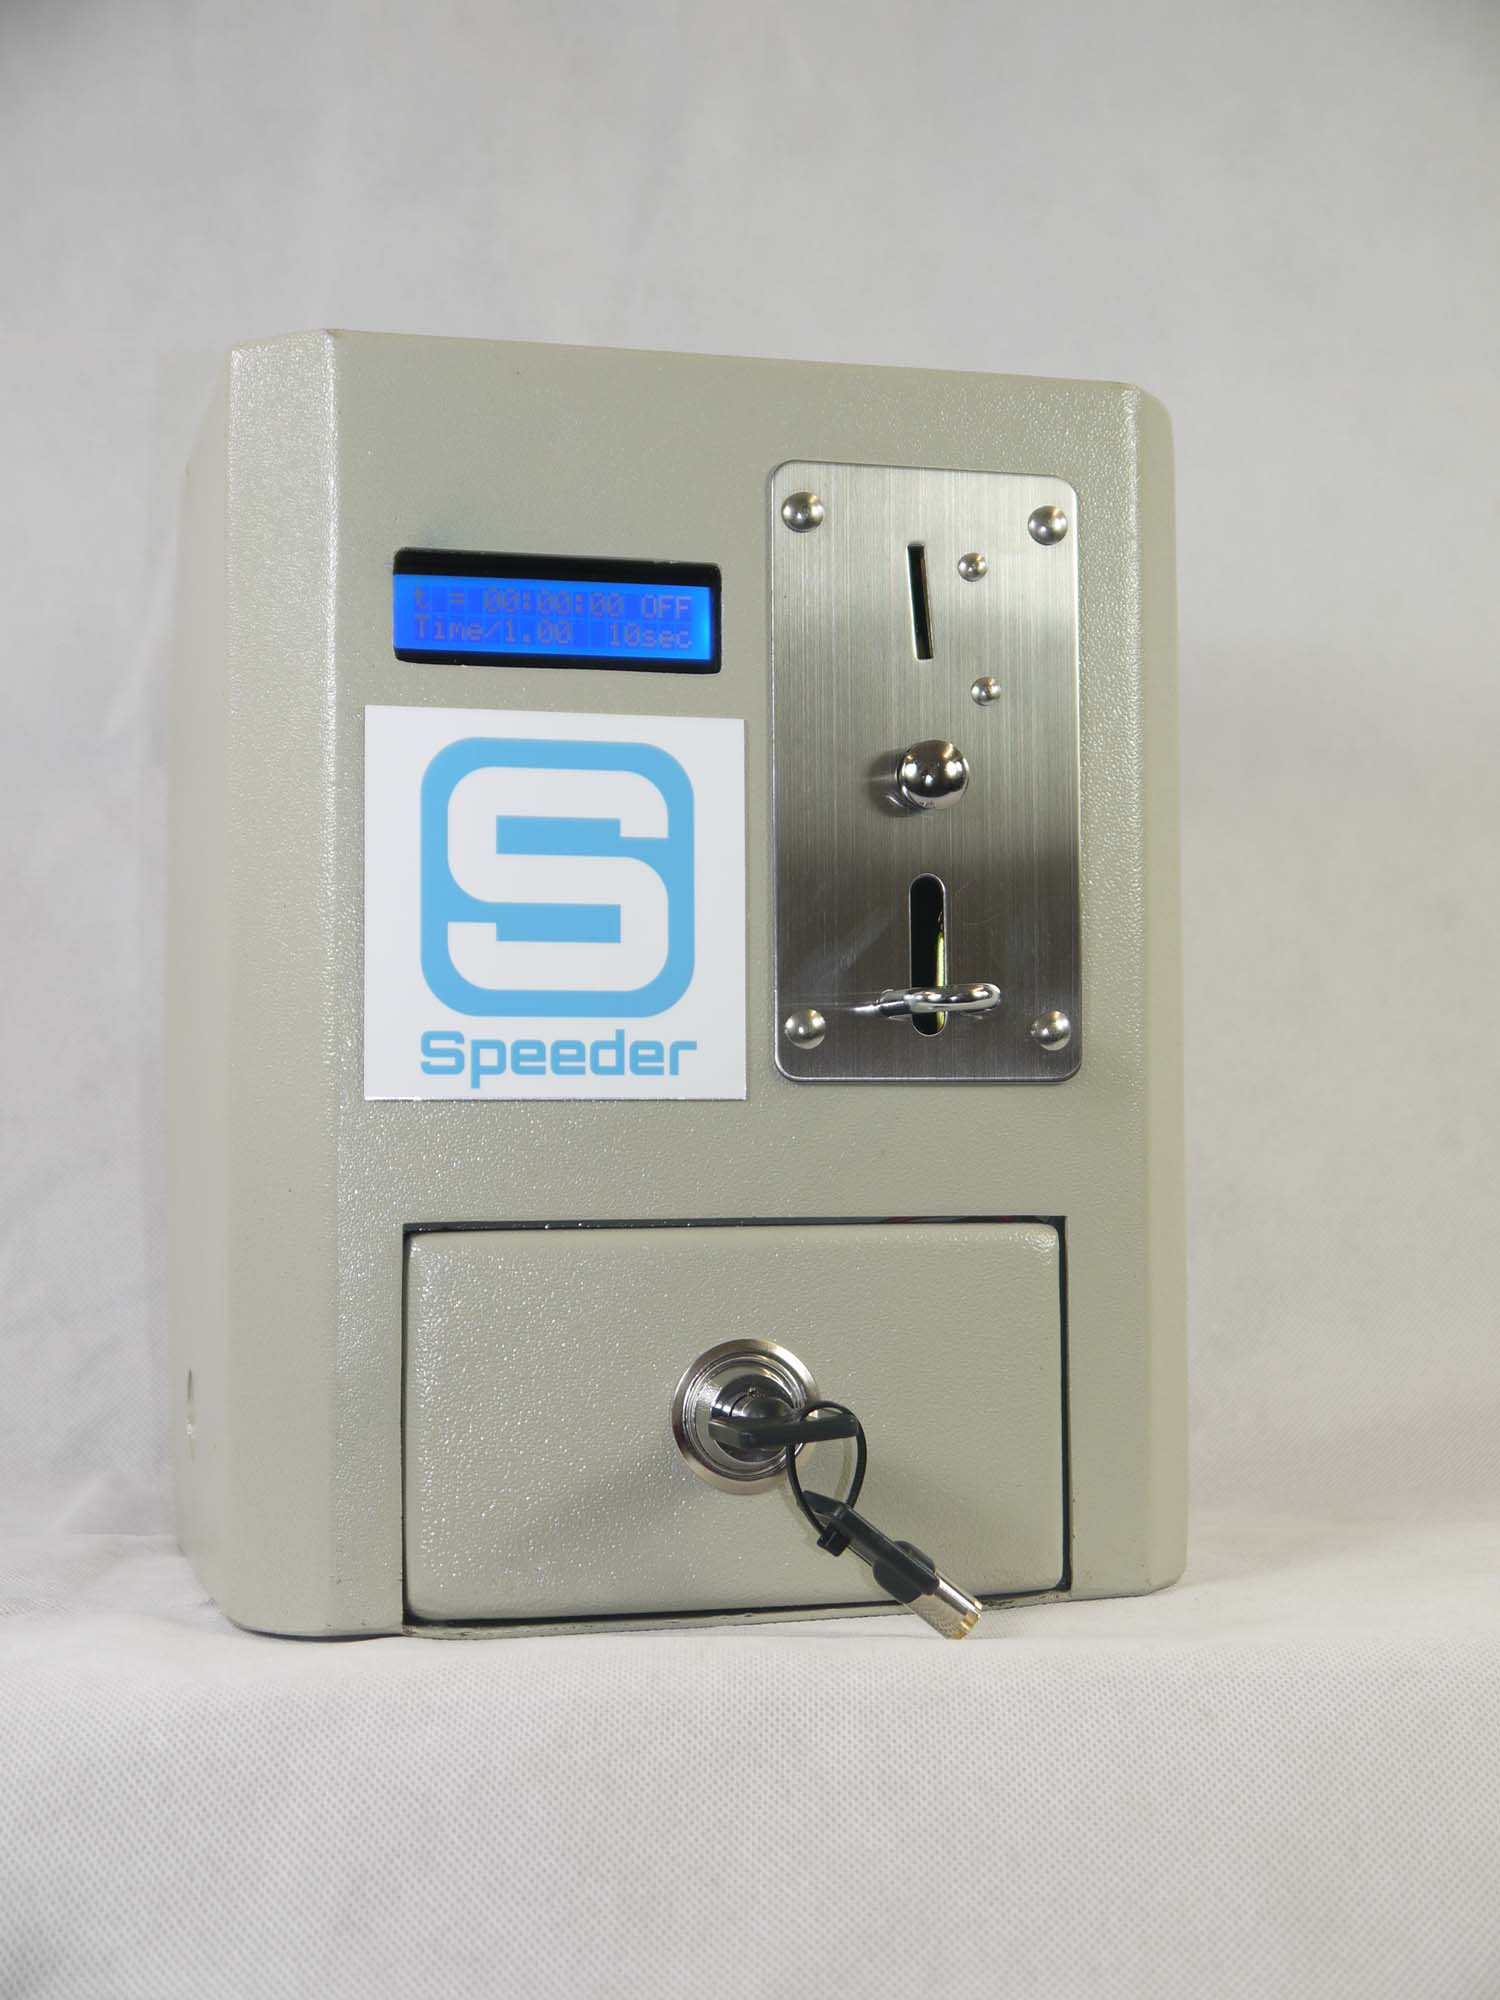 sp100ee mechanical Coin Timer Entry & Exit box